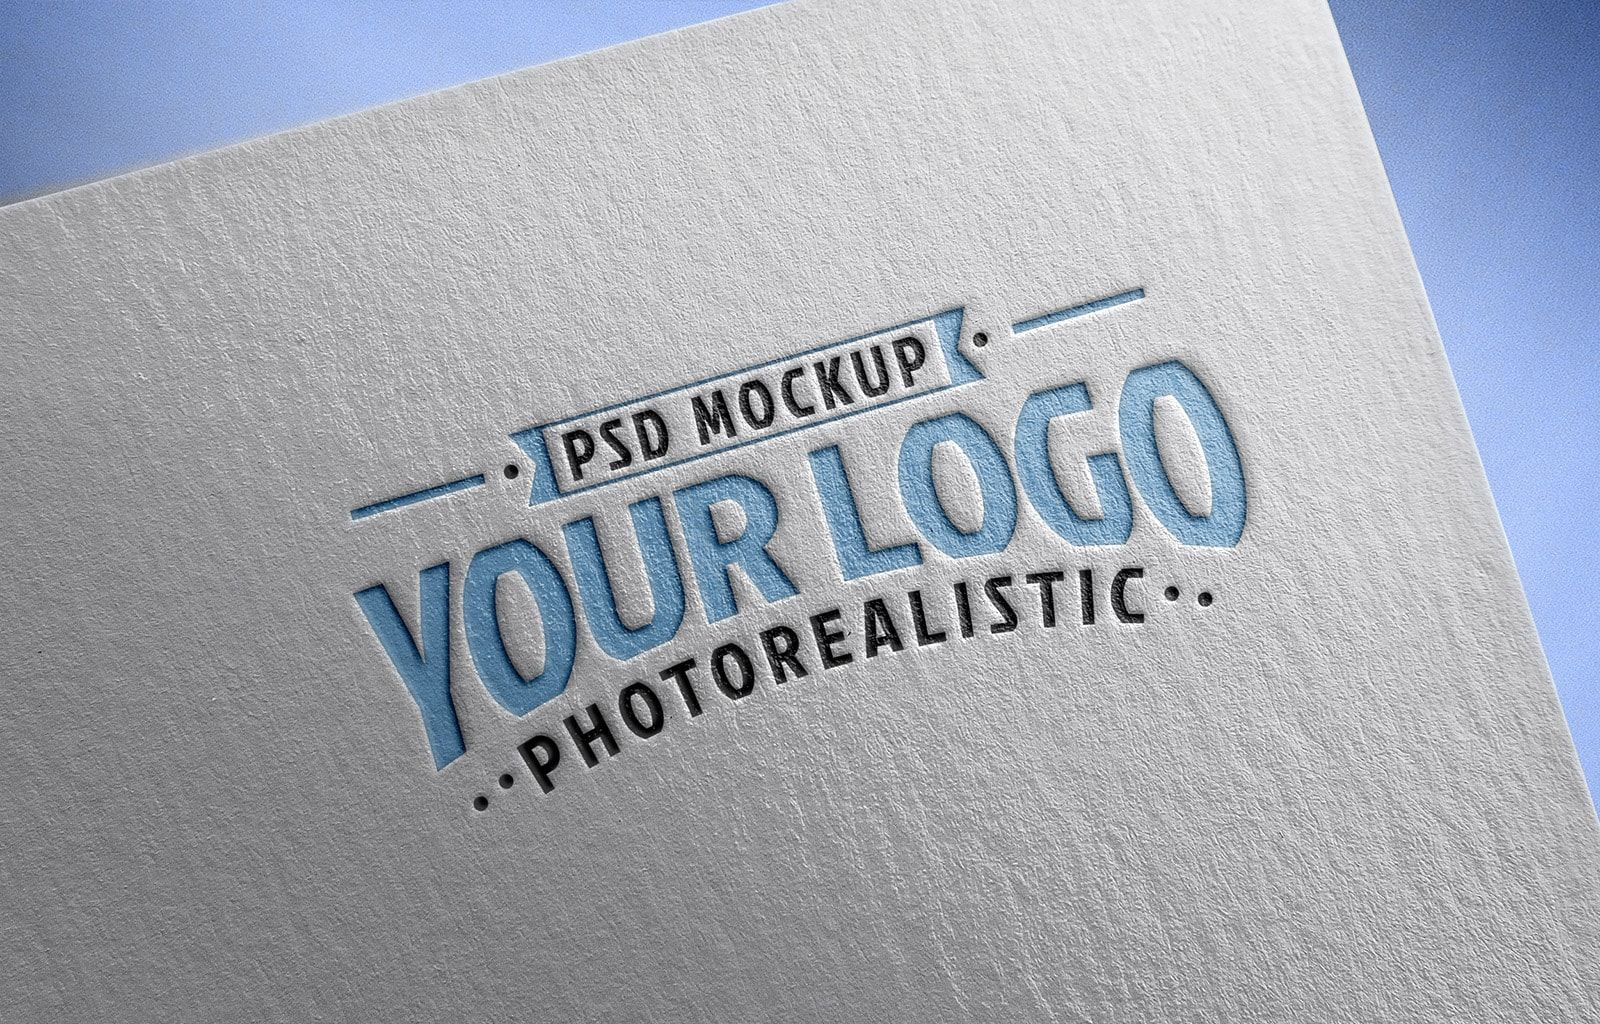 Free Logo Mockup PSD on Textured Paper.